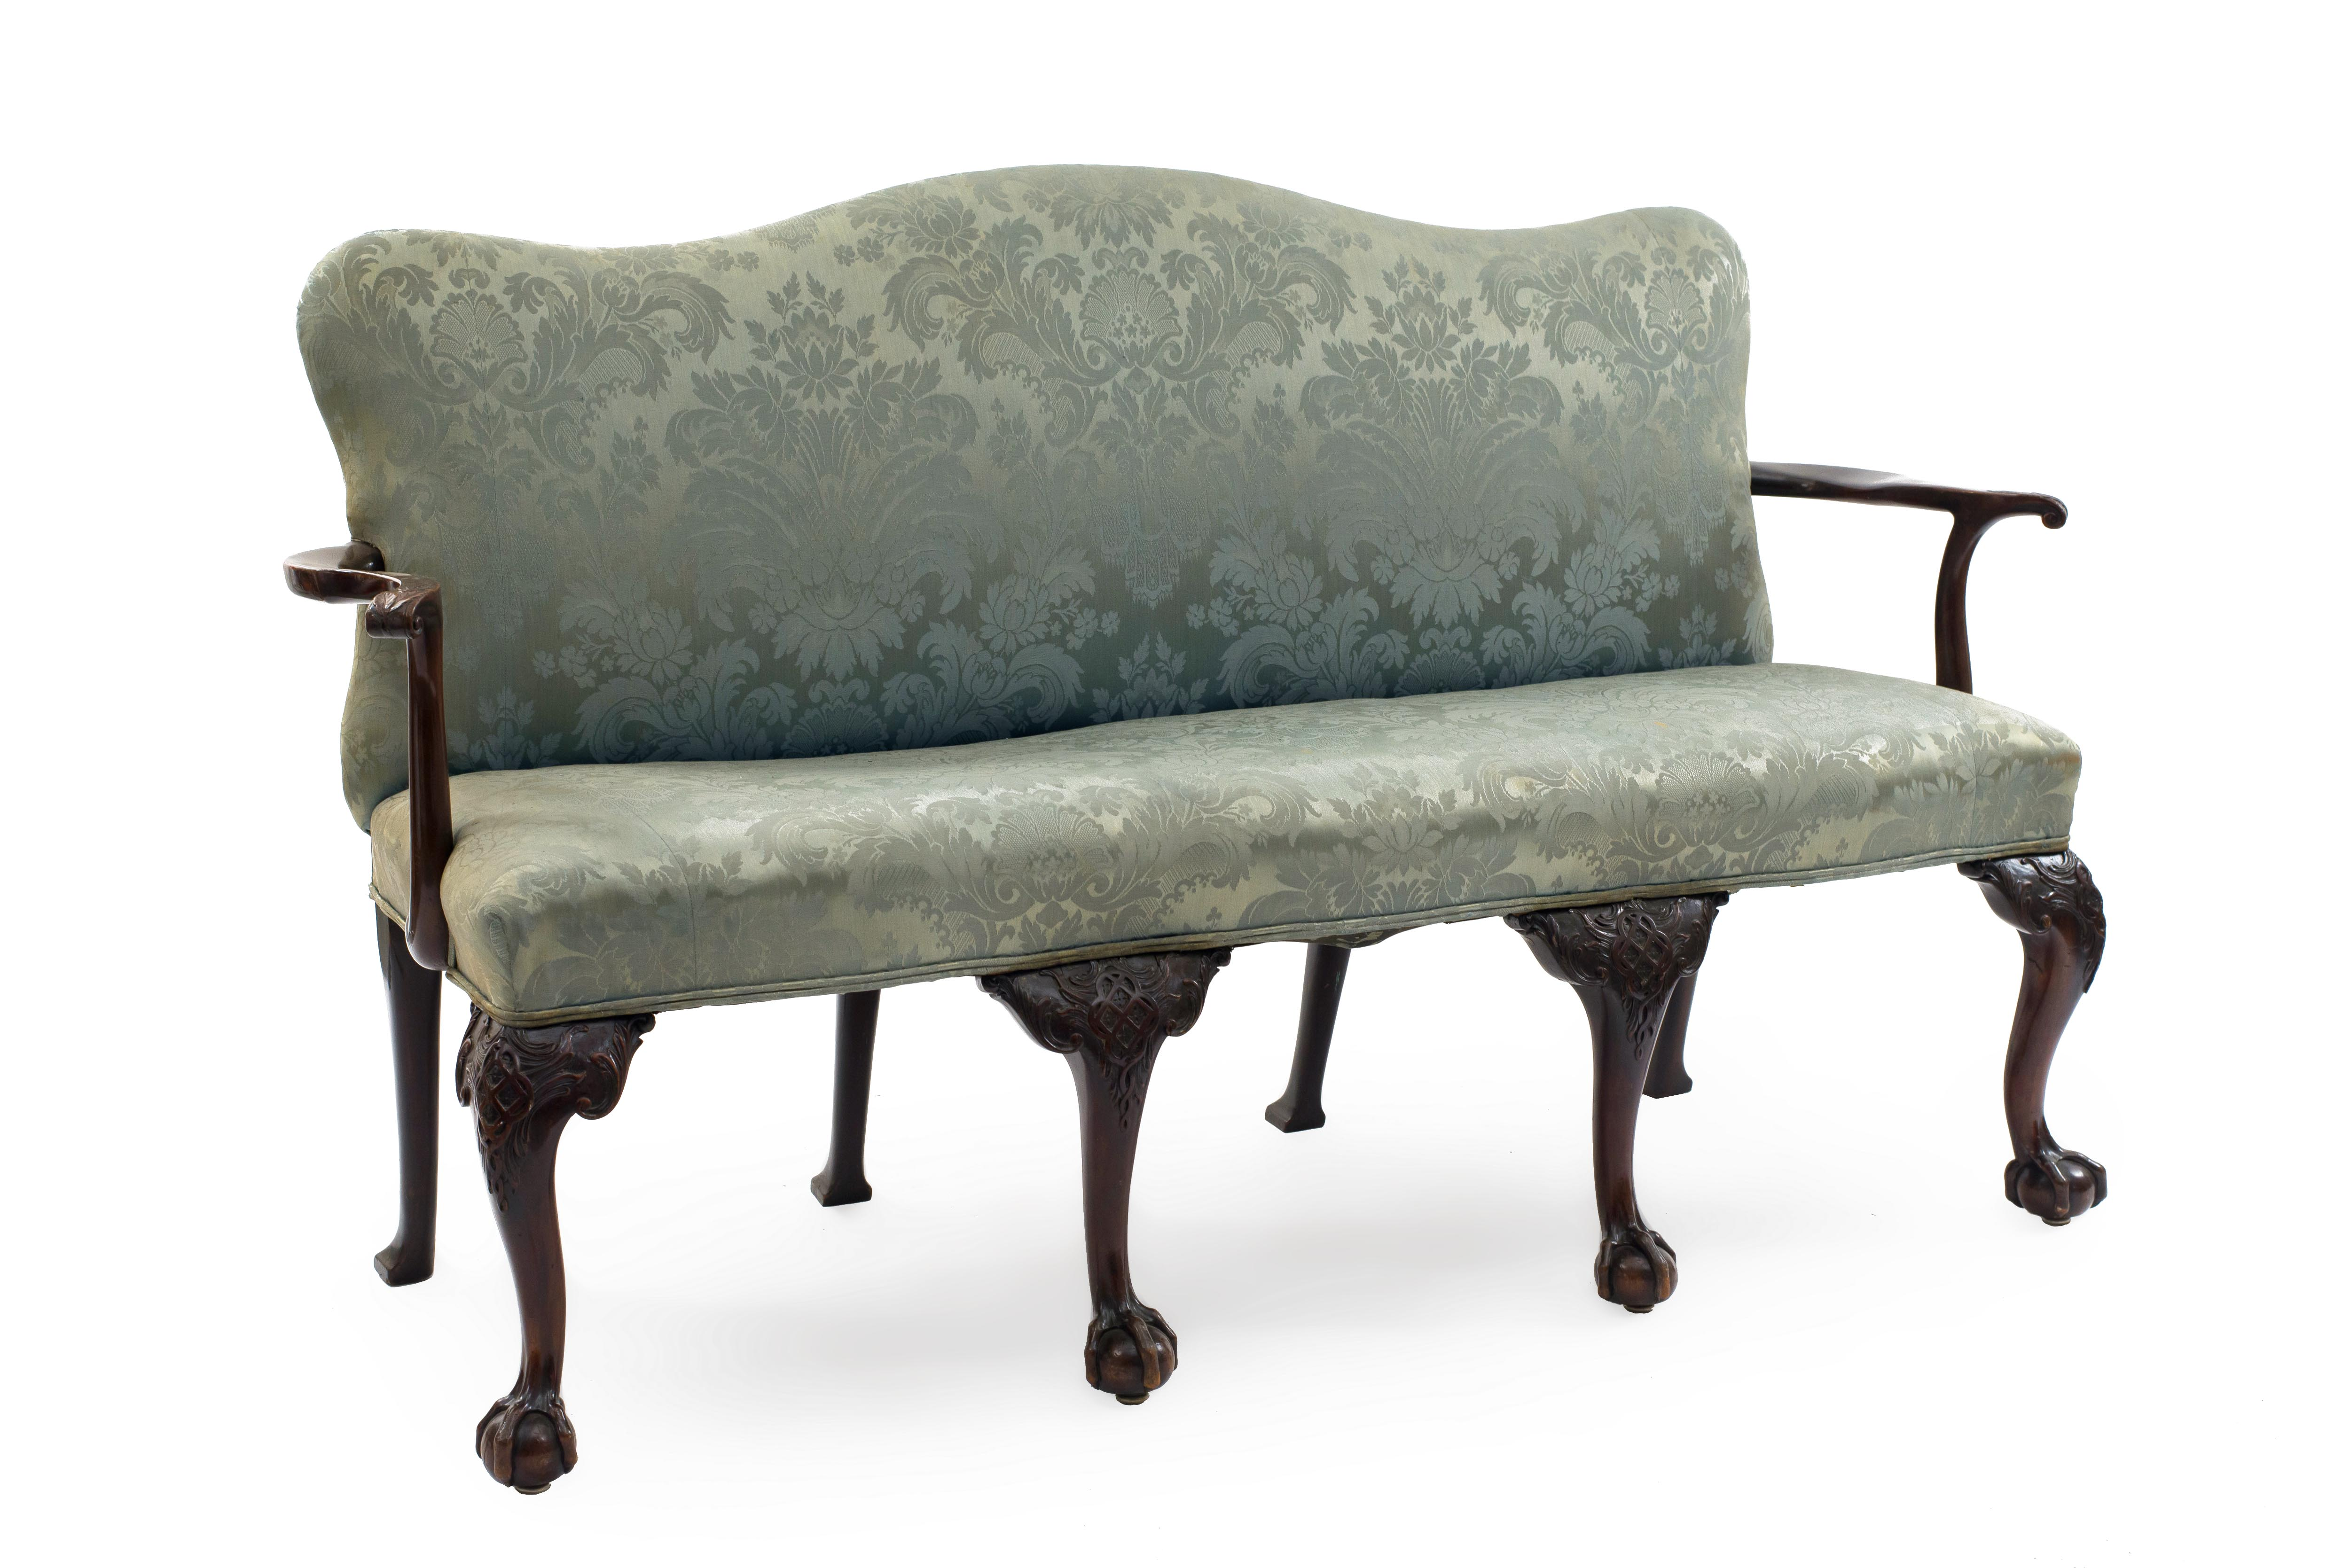 Brilliant English Chippendale Blue Damask Settee Newel Machost Co Dining Chair Design Ideas Machostcouk